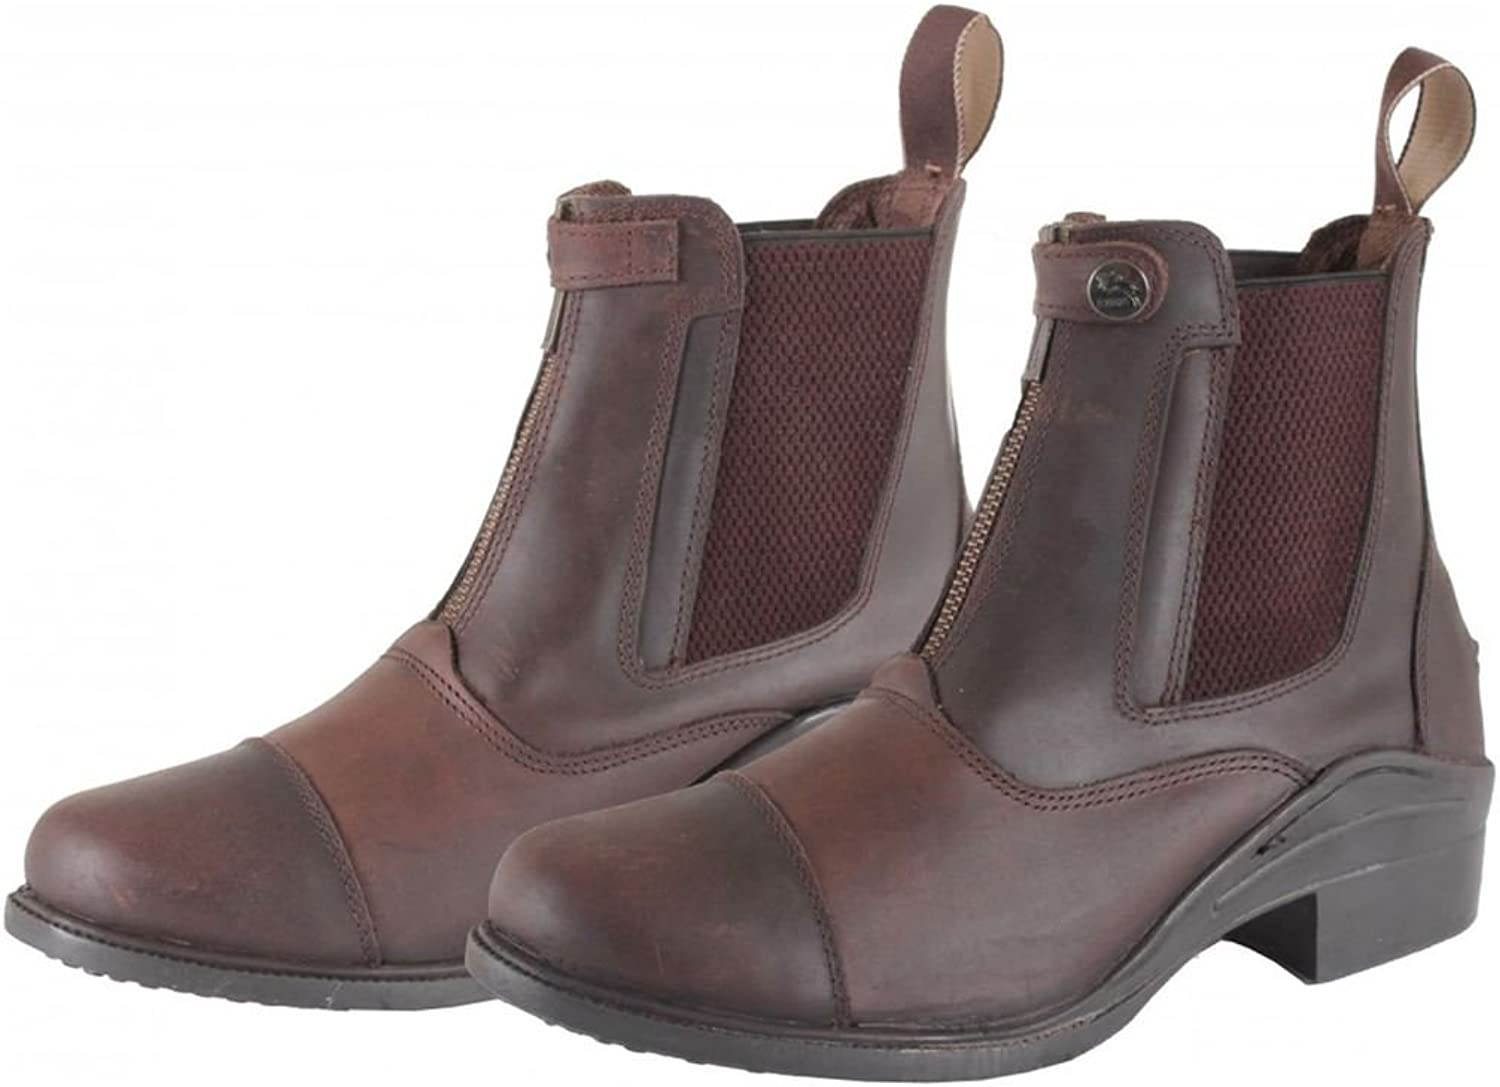 Horka Ladies Stable Dena Jodhpur Sneaker Laces & Fur lining Horse Riding Boots